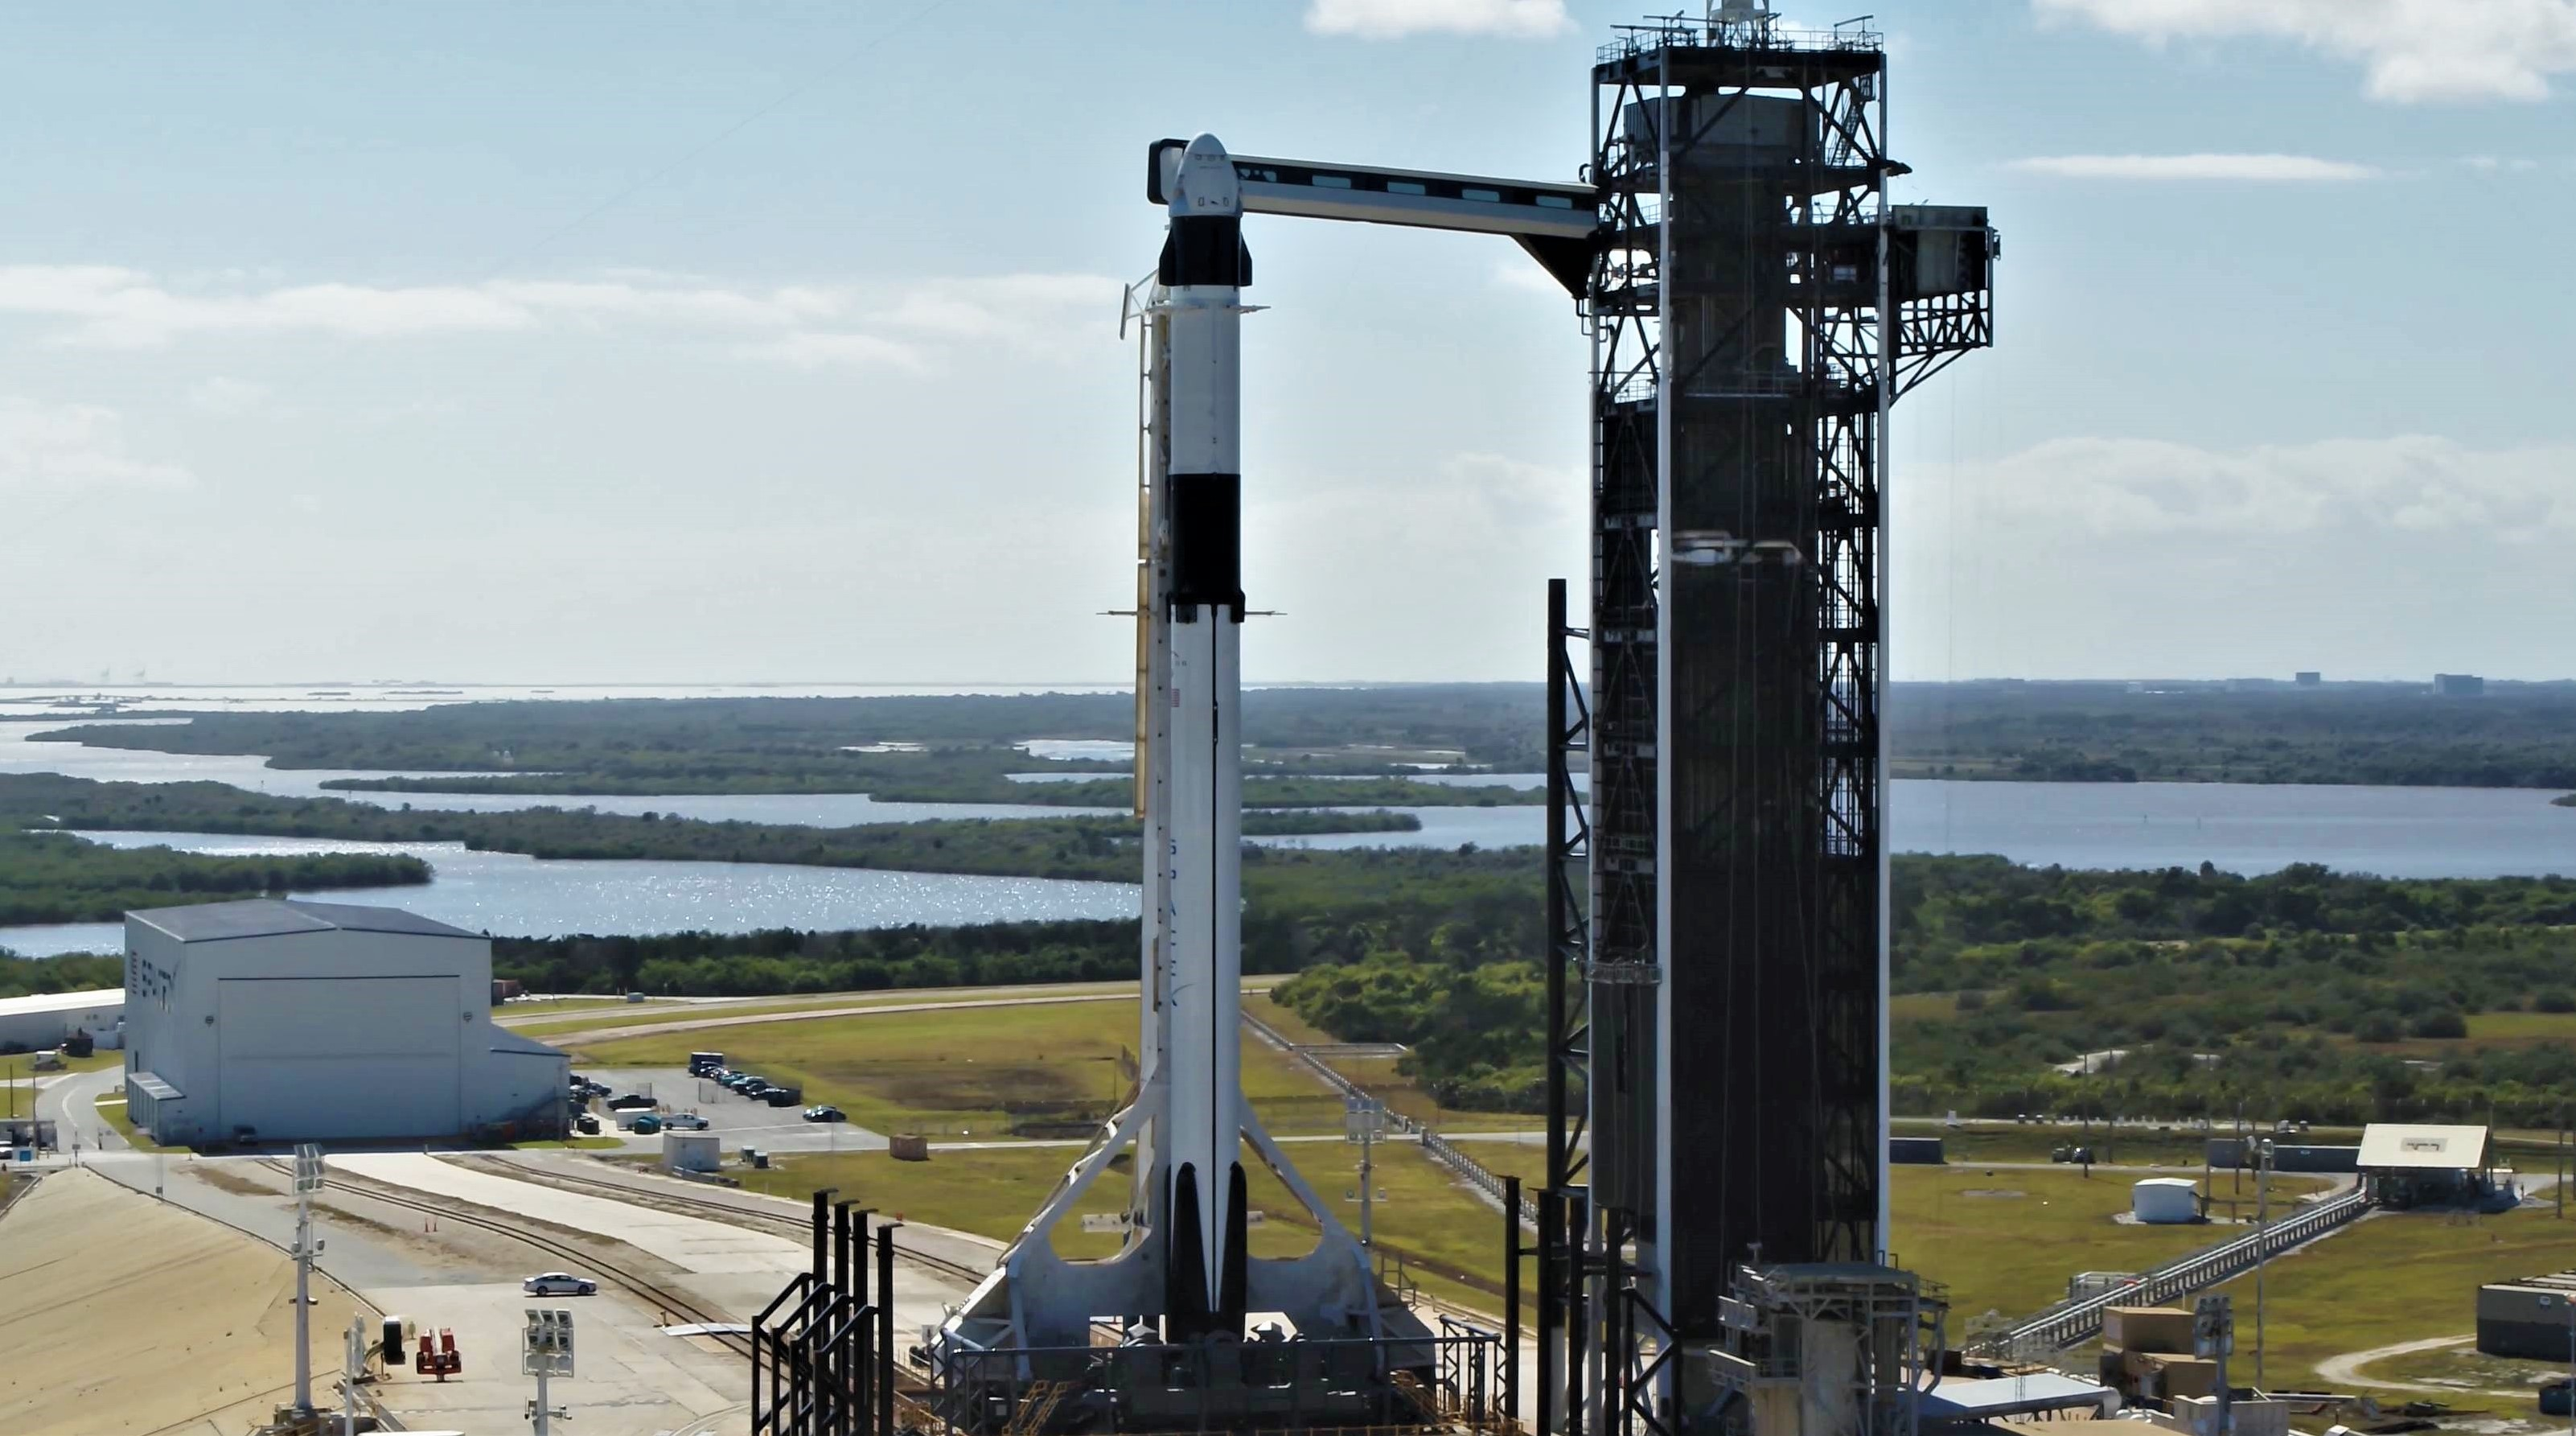 Crew Dragon Falcon 9 DM-1 vertical 39A (SpaceX) 2